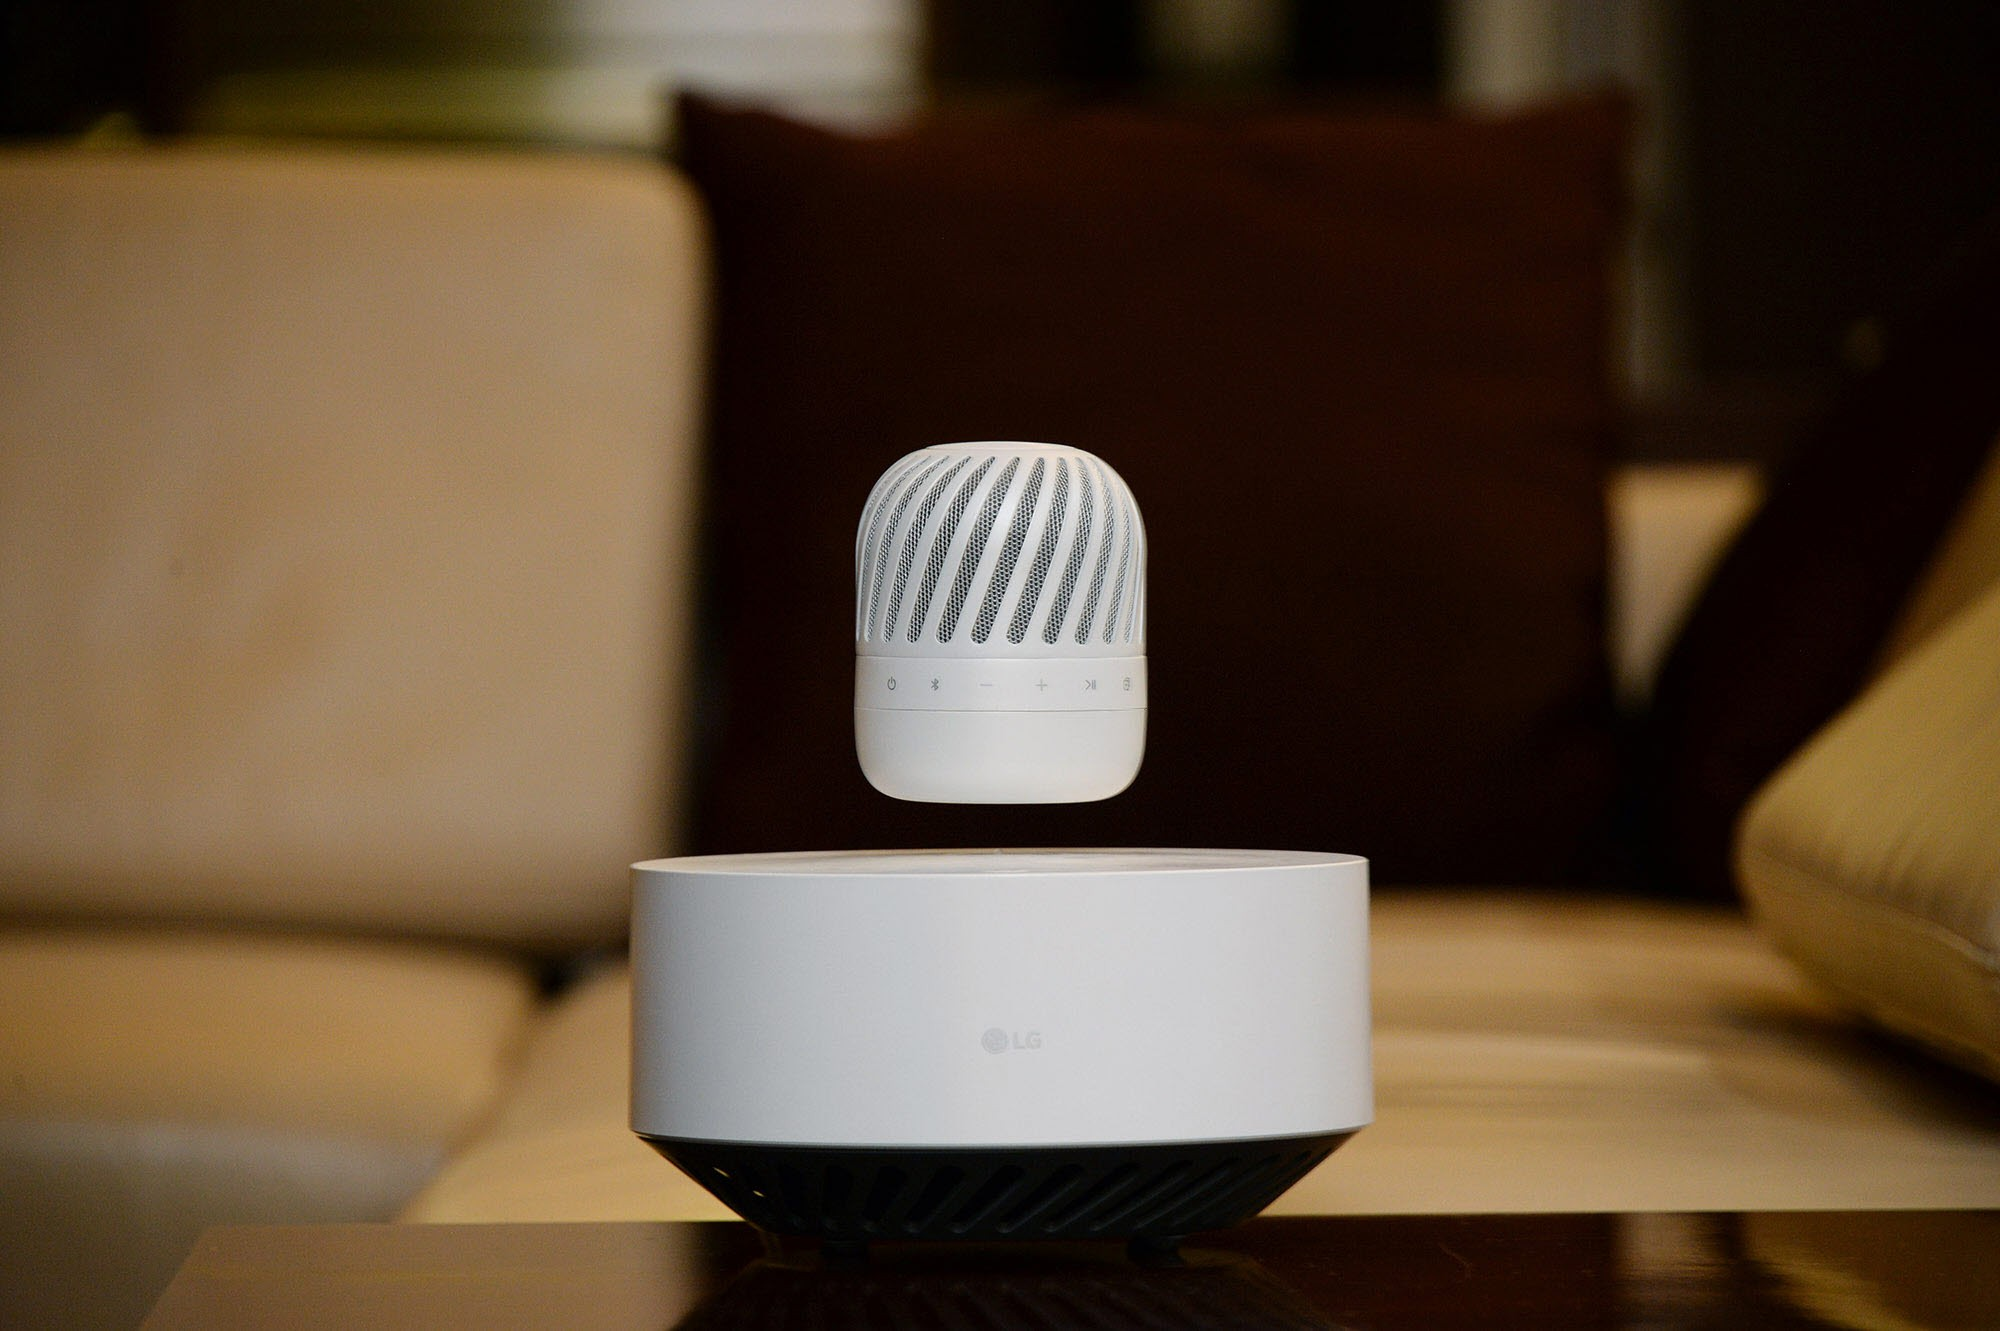 LG-Levitating-Portable-Speaker1